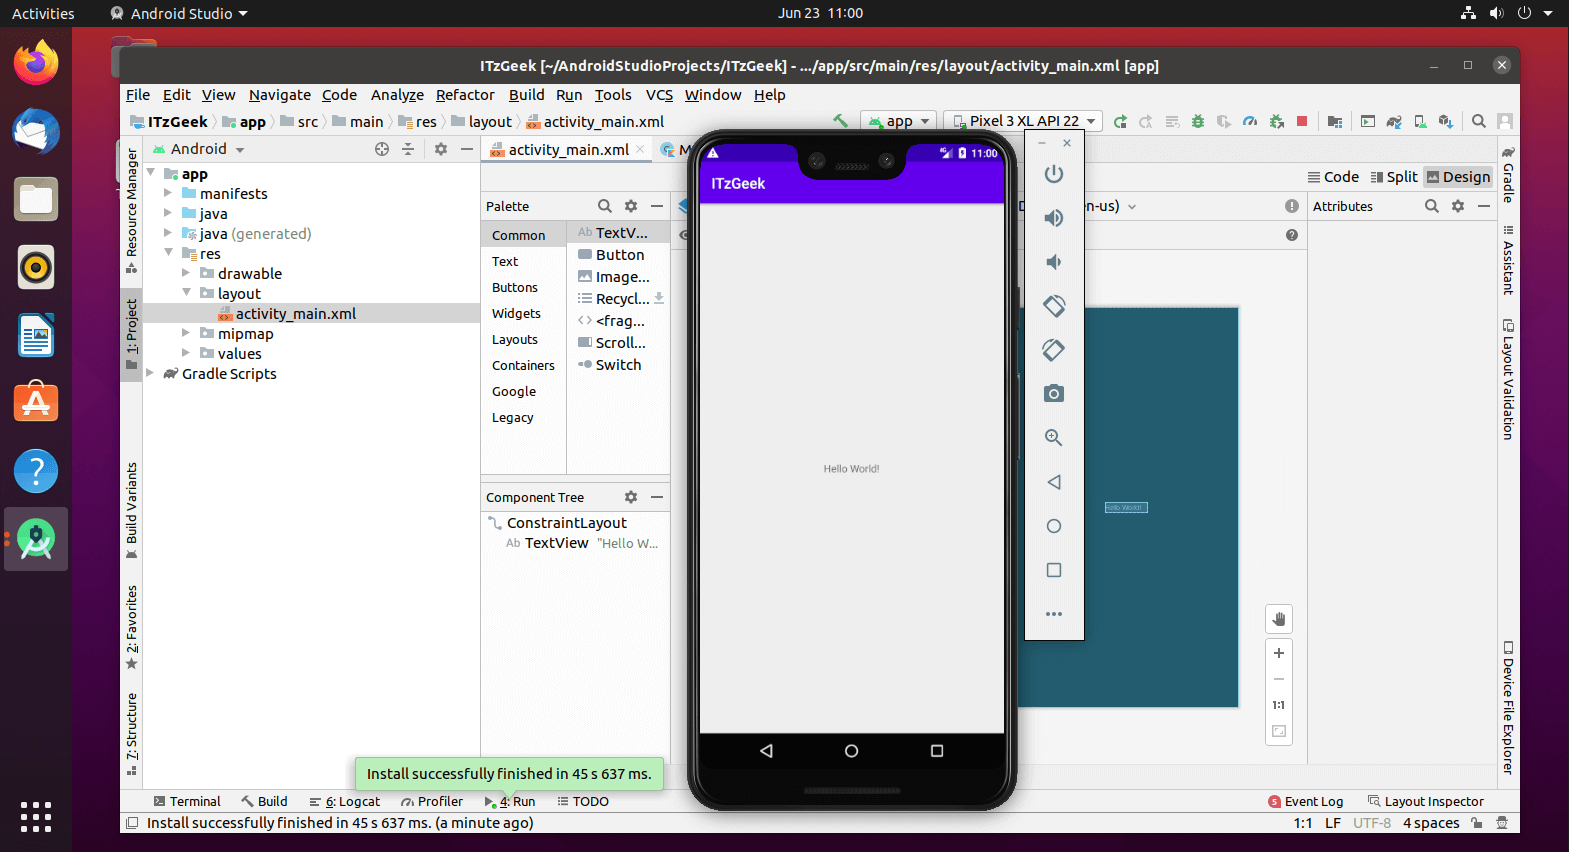 Android Studio Running on Ubuntu 20.04